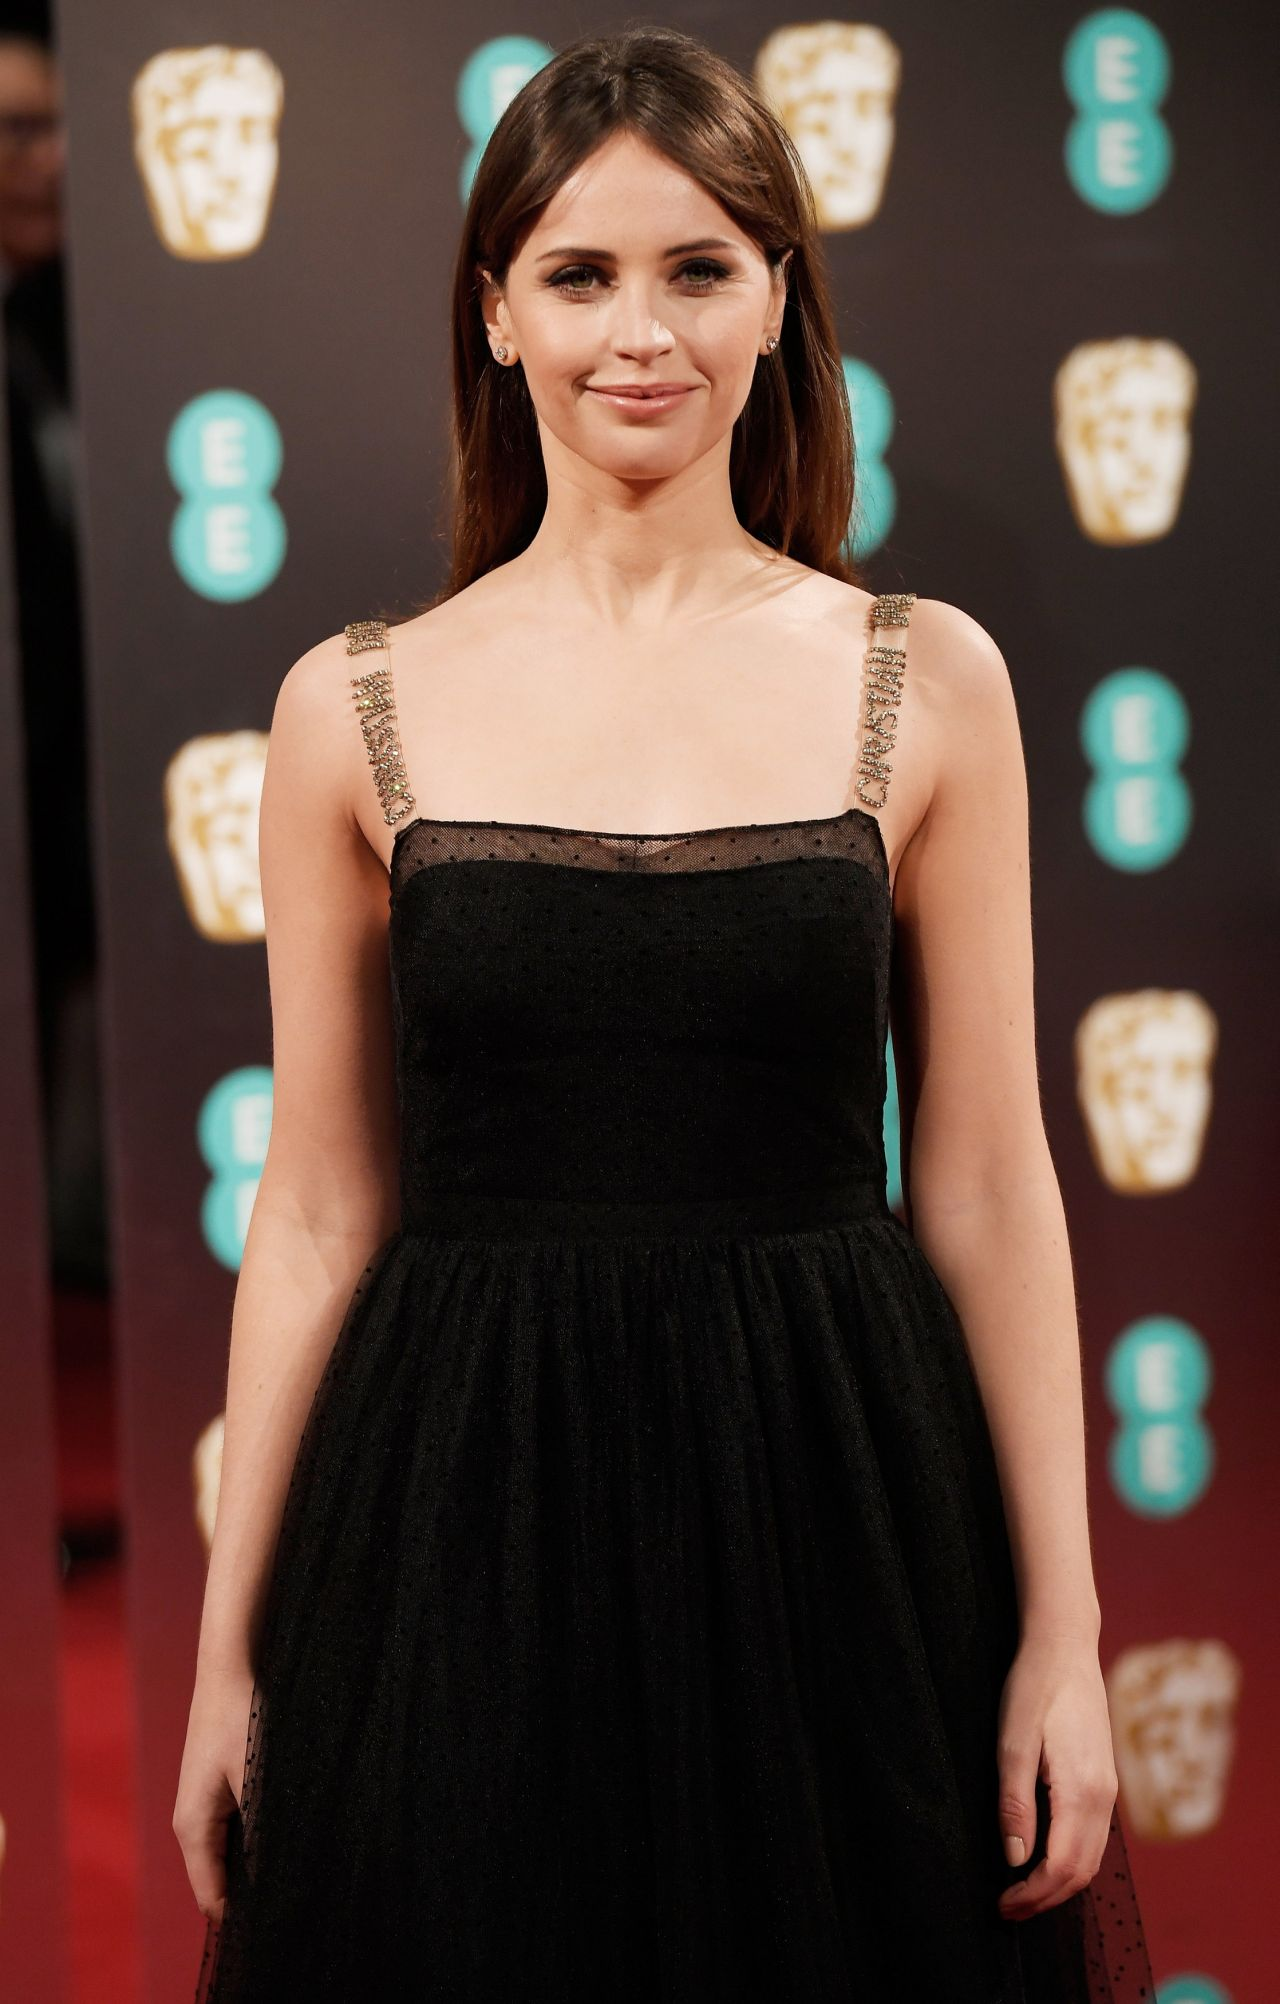 Felicity Jones At BAFTA Awards In London UK 212 2017